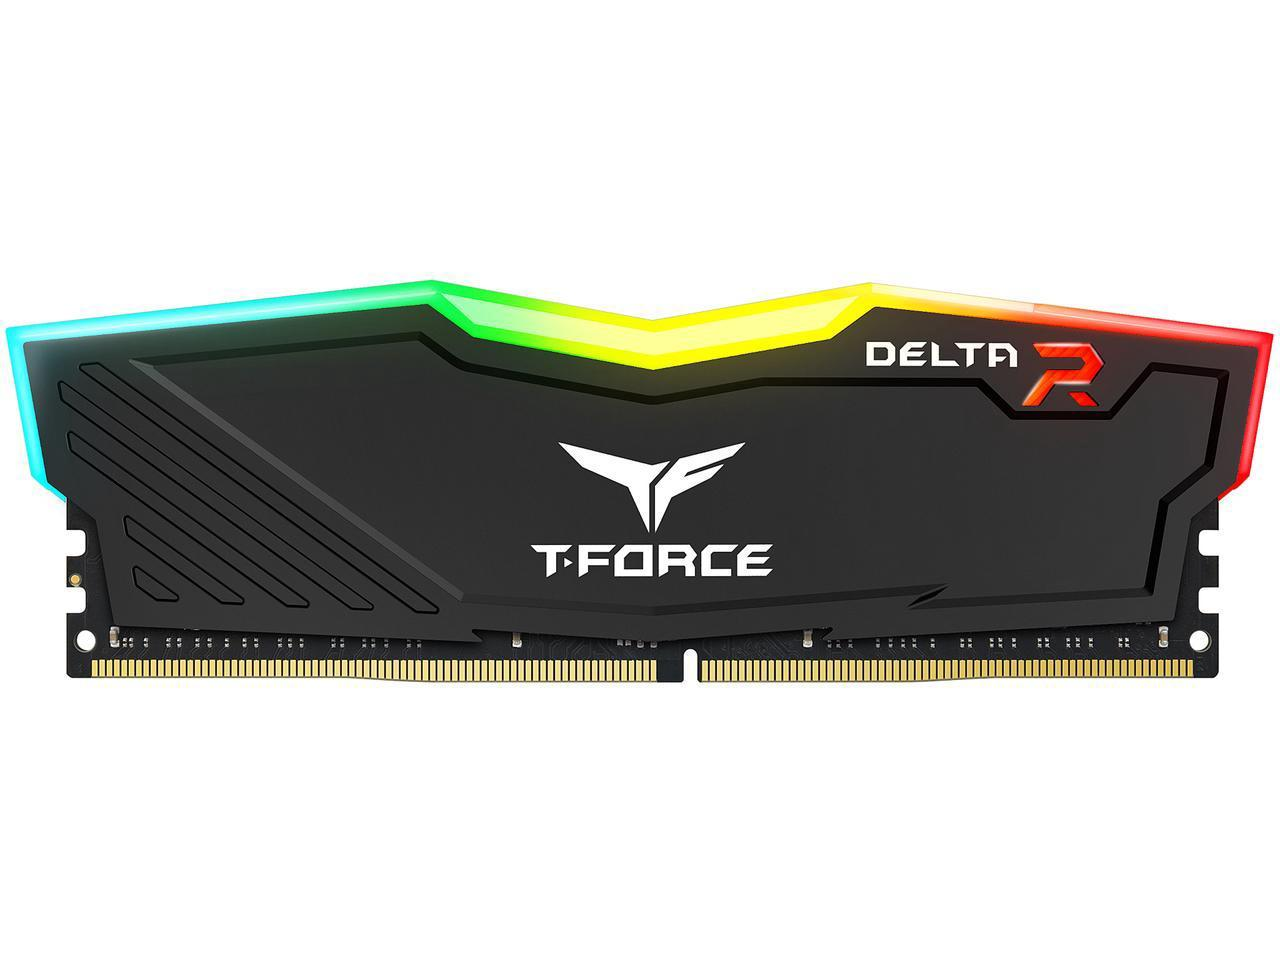 TeamGroup T-Force Delta II RGB 16GB DDR4 SDRAM DDR4 2666 Desktop Memory Model TF3D416G2666HC15B01